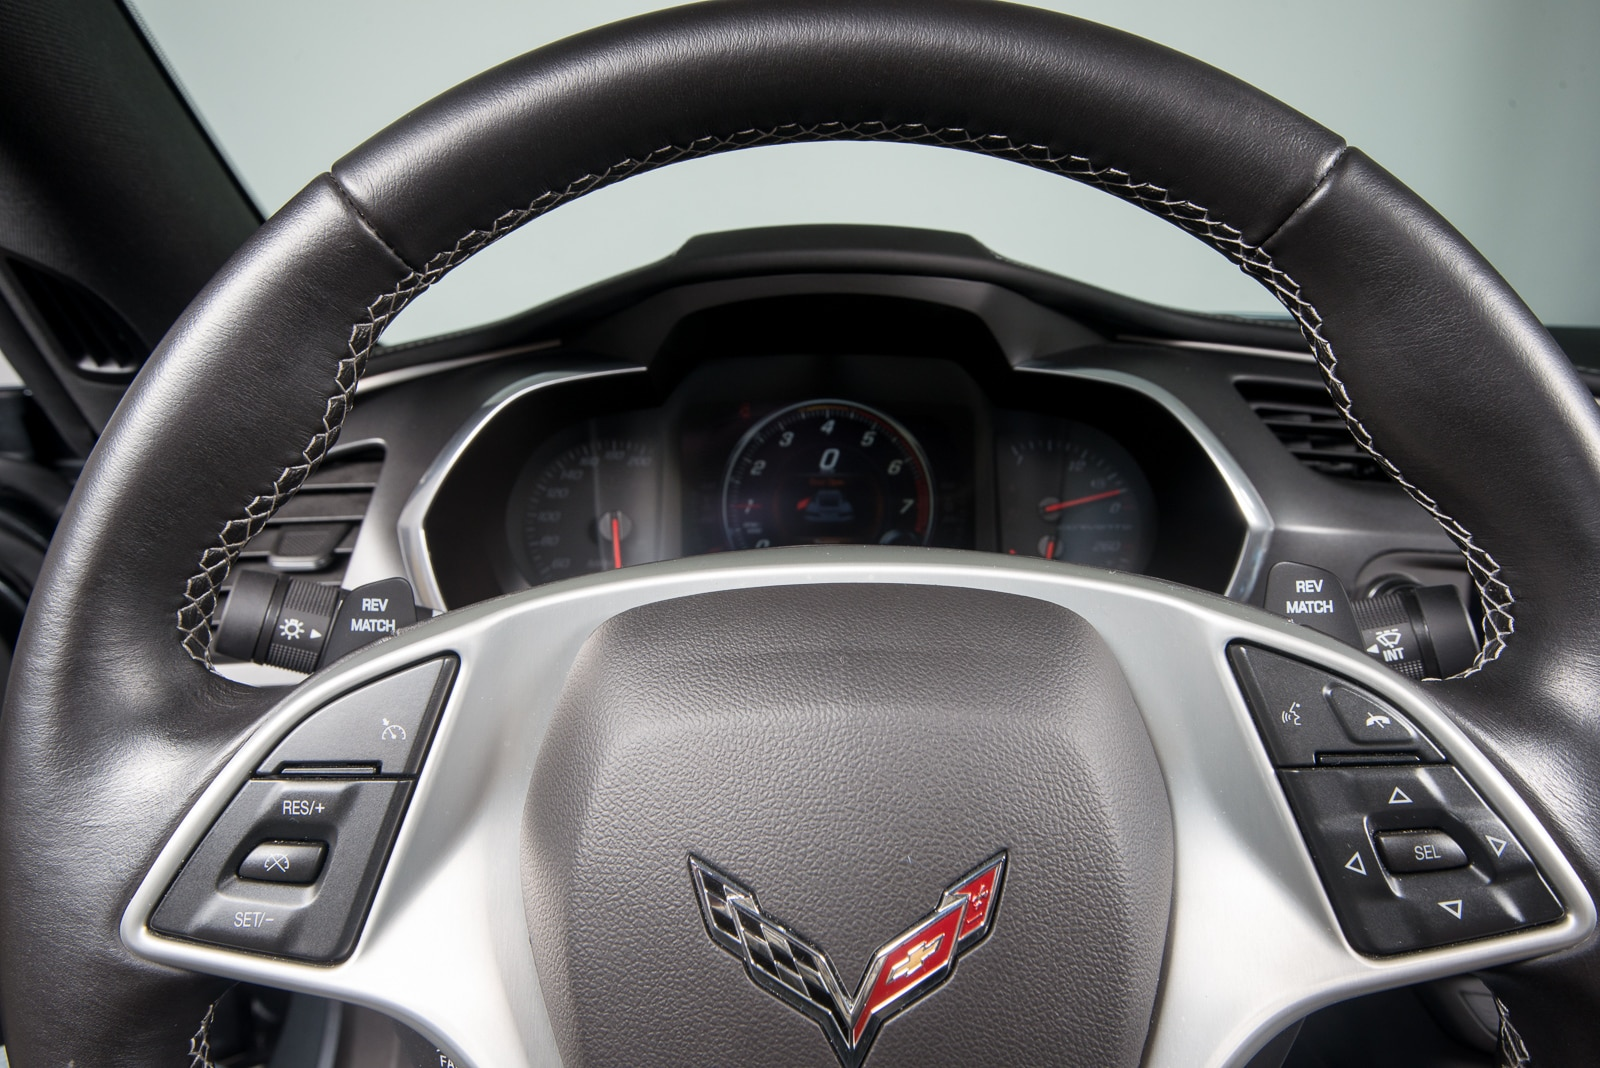 Craigslist Atlanta Furniture For Sale 2014 Corvette Stingray Exterior Pictures Chevrolet.html | Autos Weblog